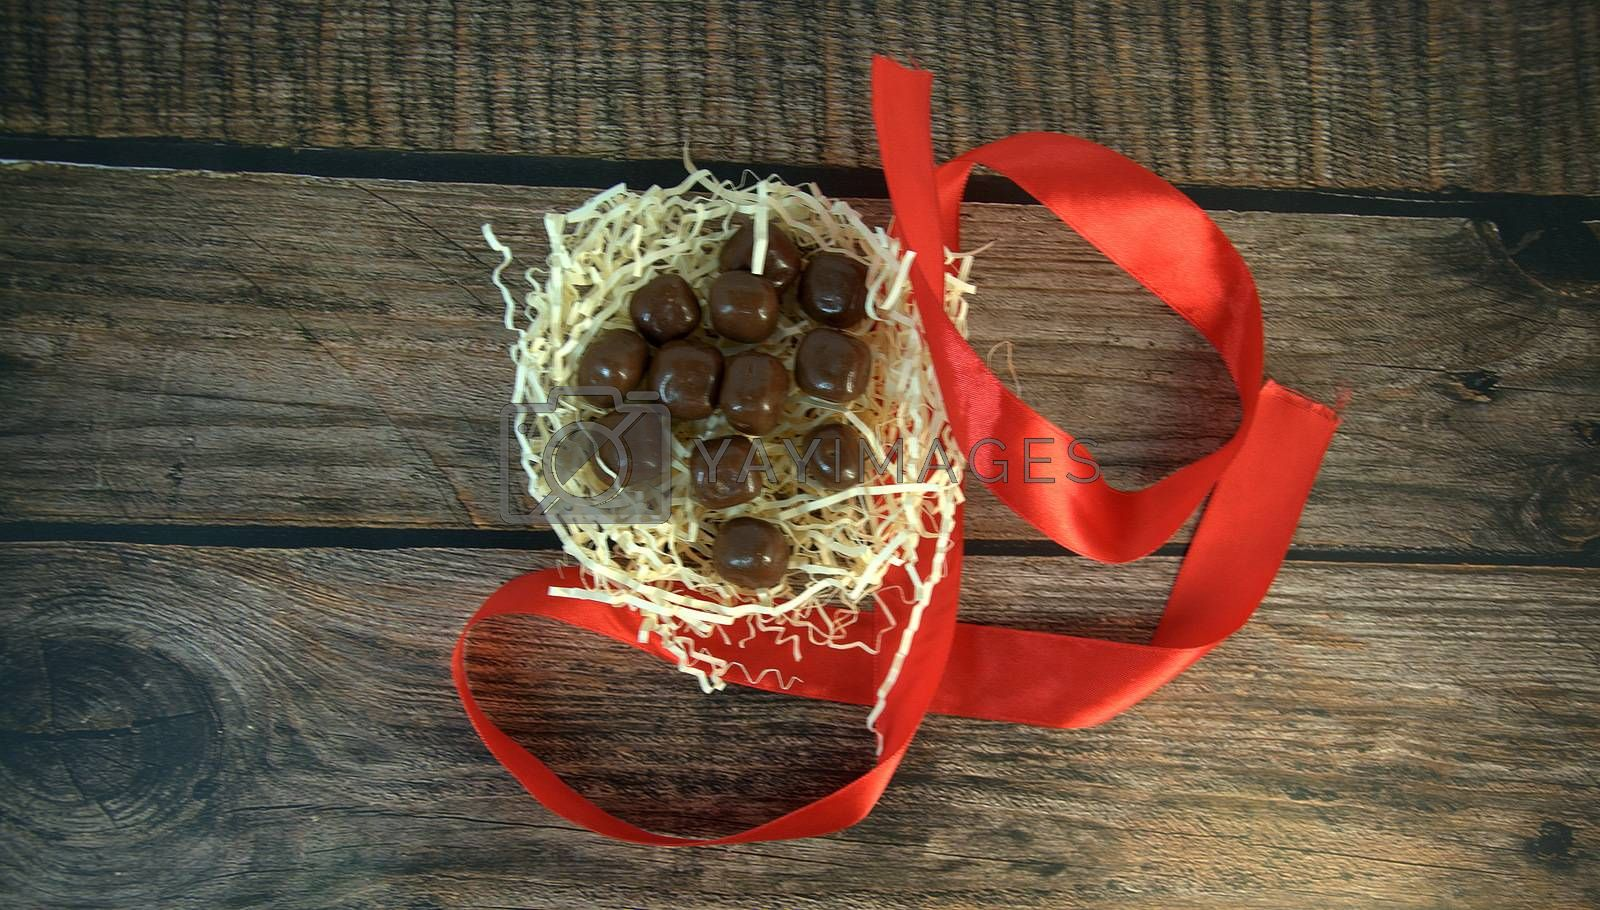 A nest of straw with chocolates and scarlet ribbon on a wooden table. Close-up.